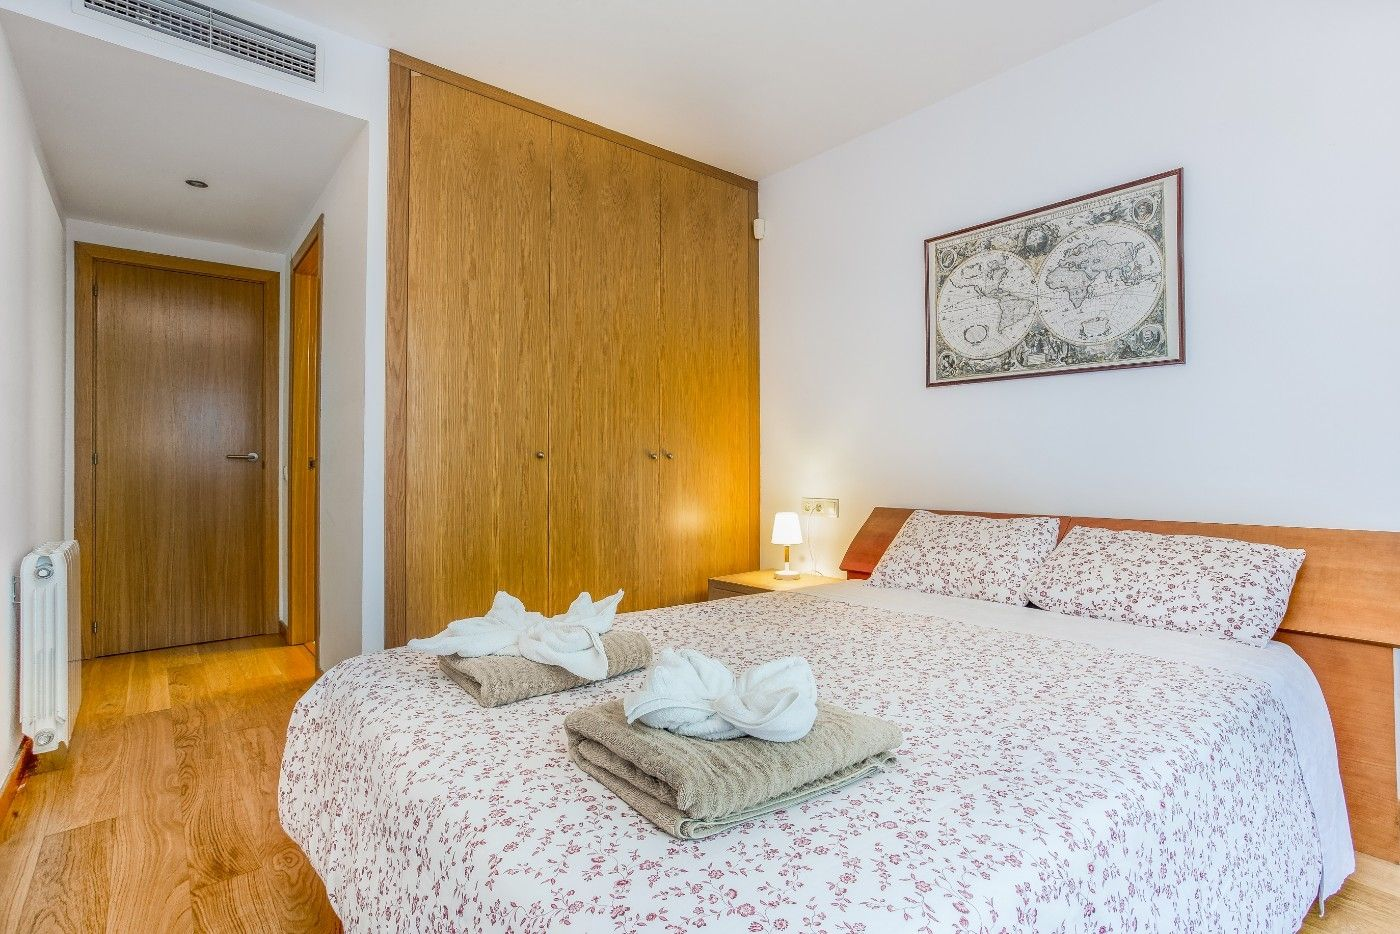 Apartament en Carrer Bertran, 111